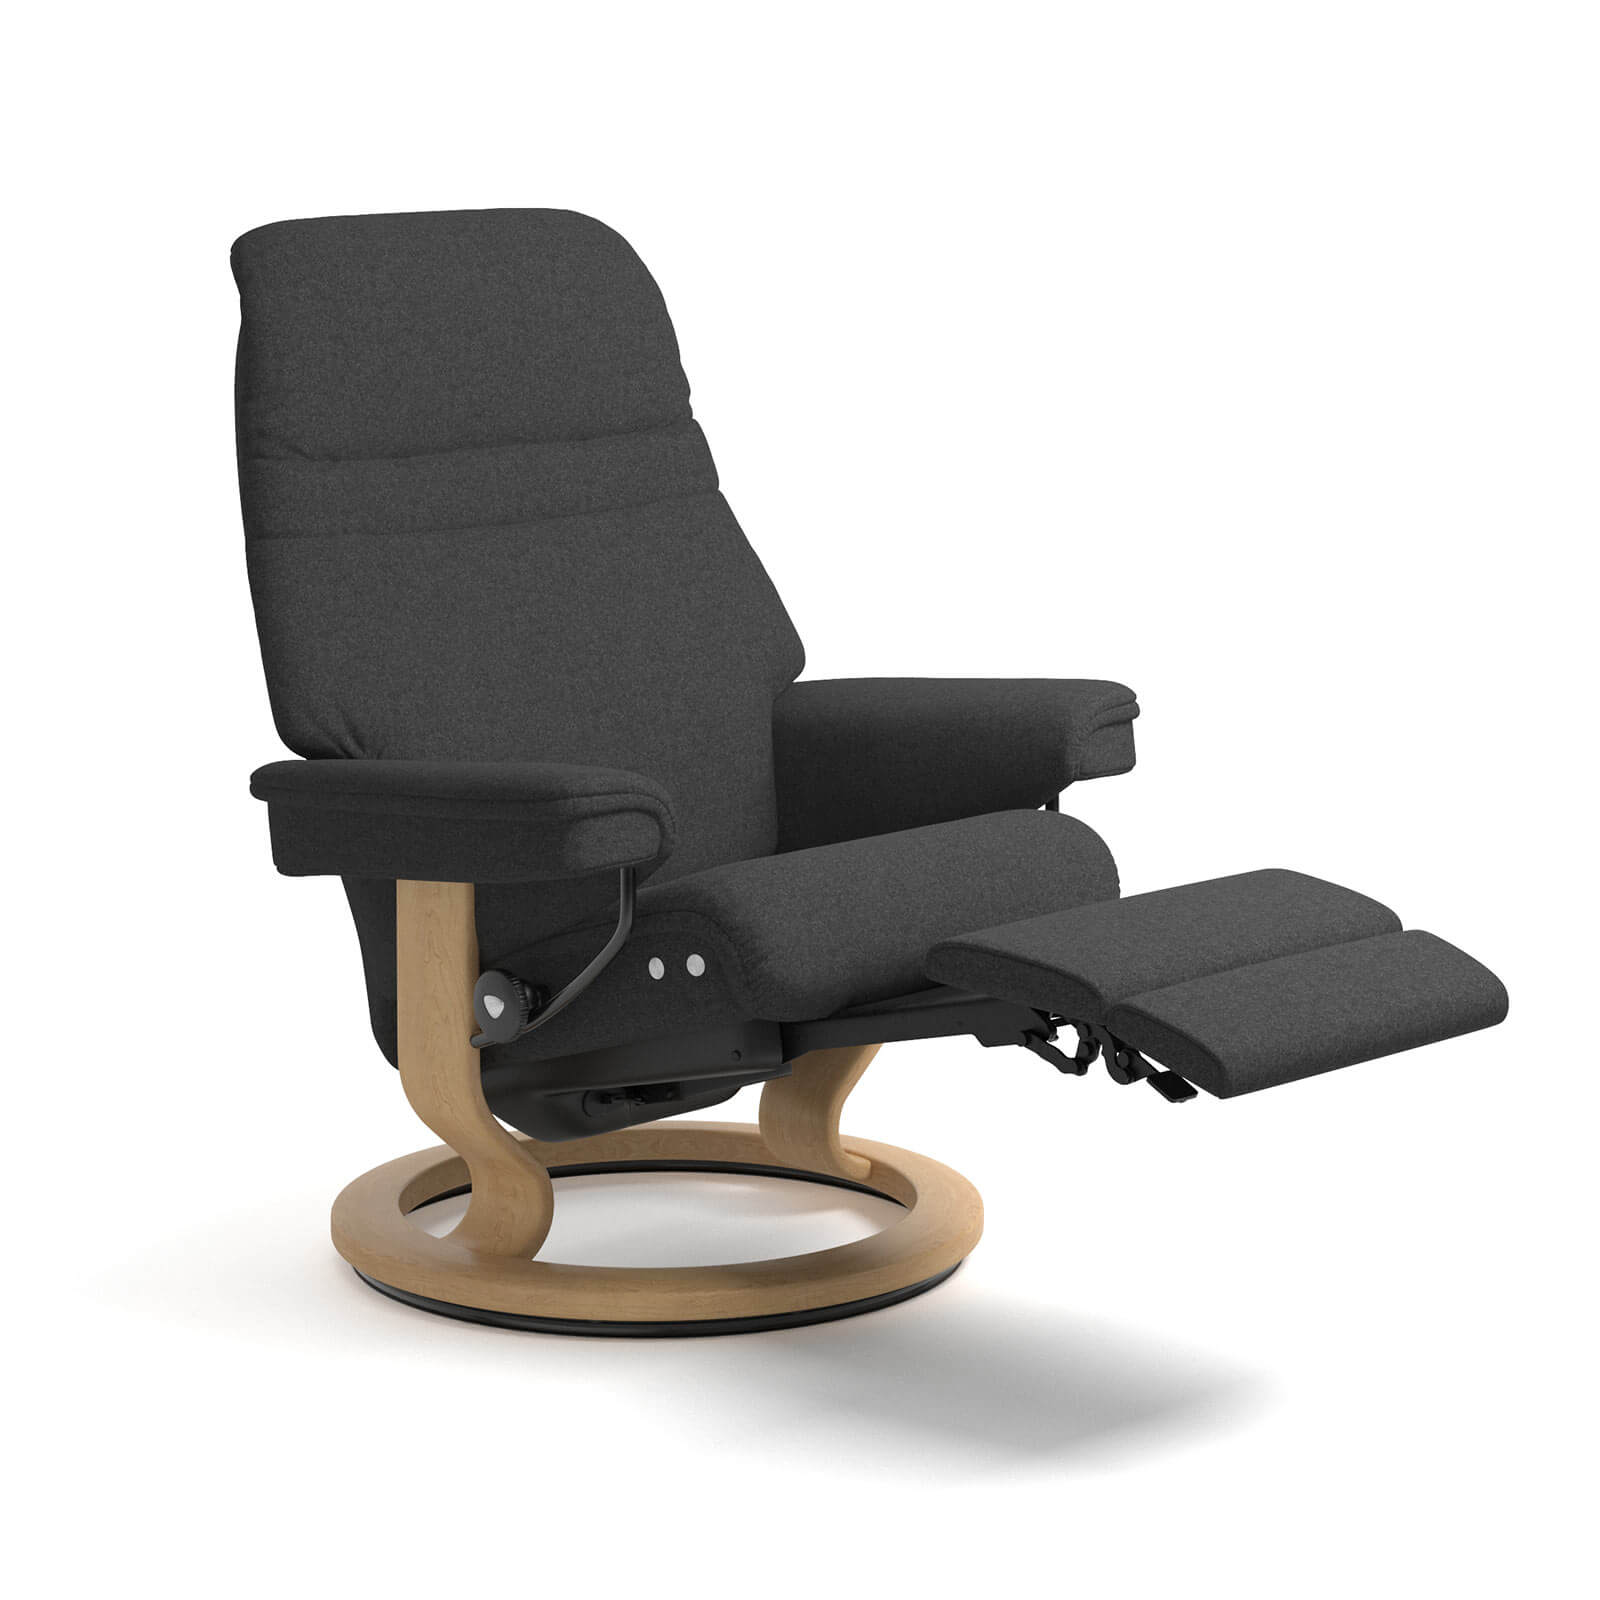 Relaxsessel Mit Stoffbezug Stressless Sessel Sunrise Legcomfort Stoff Calido In Dark Grey Gestell Natur